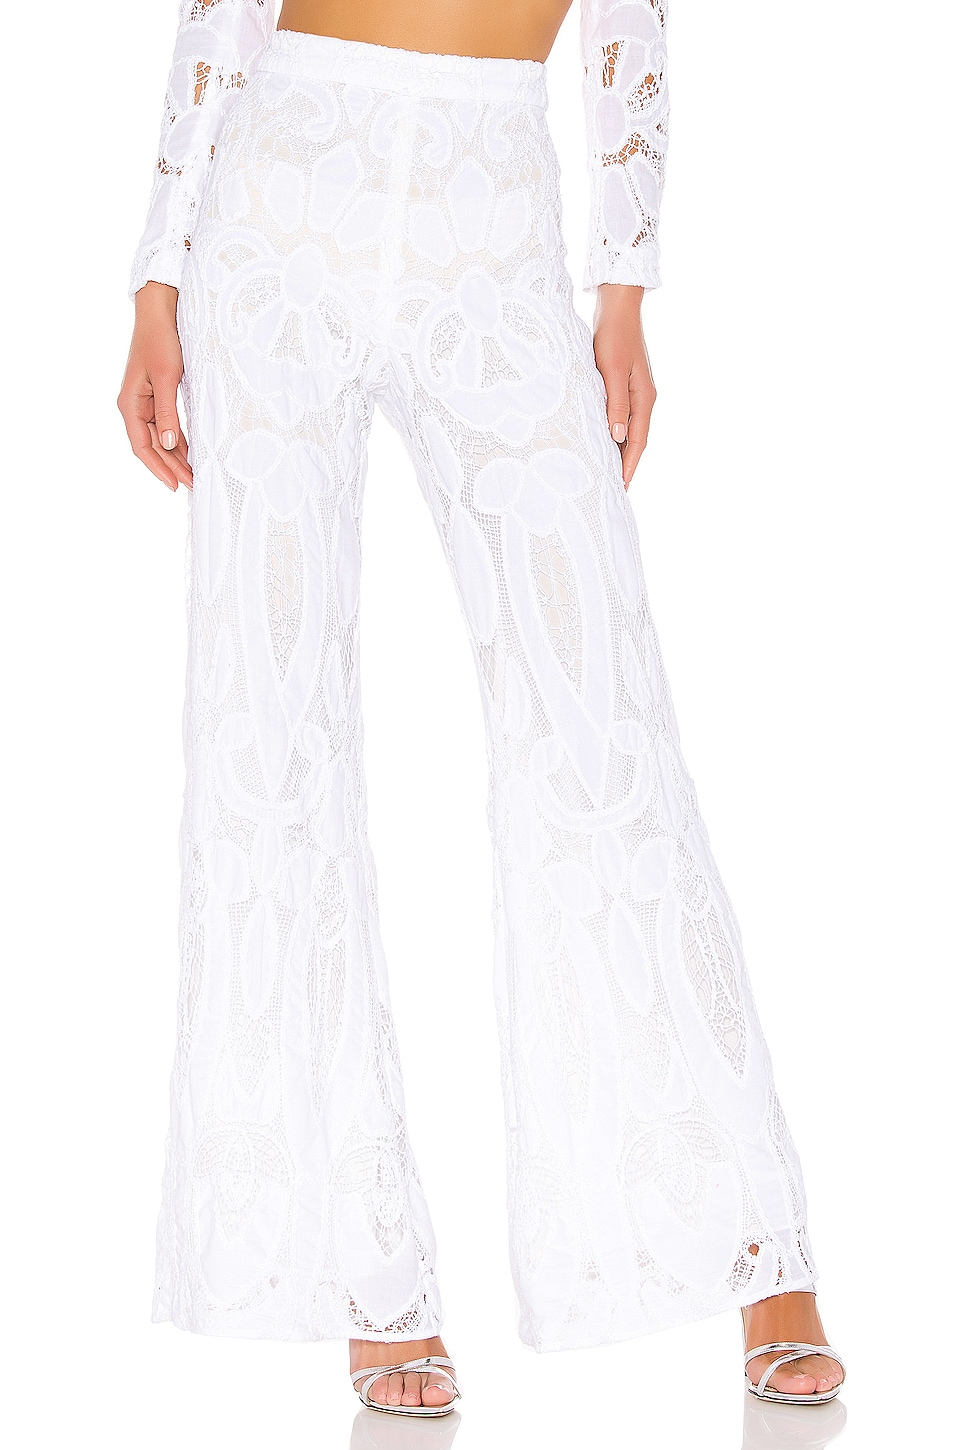 Alexis Ritchie Pant in White